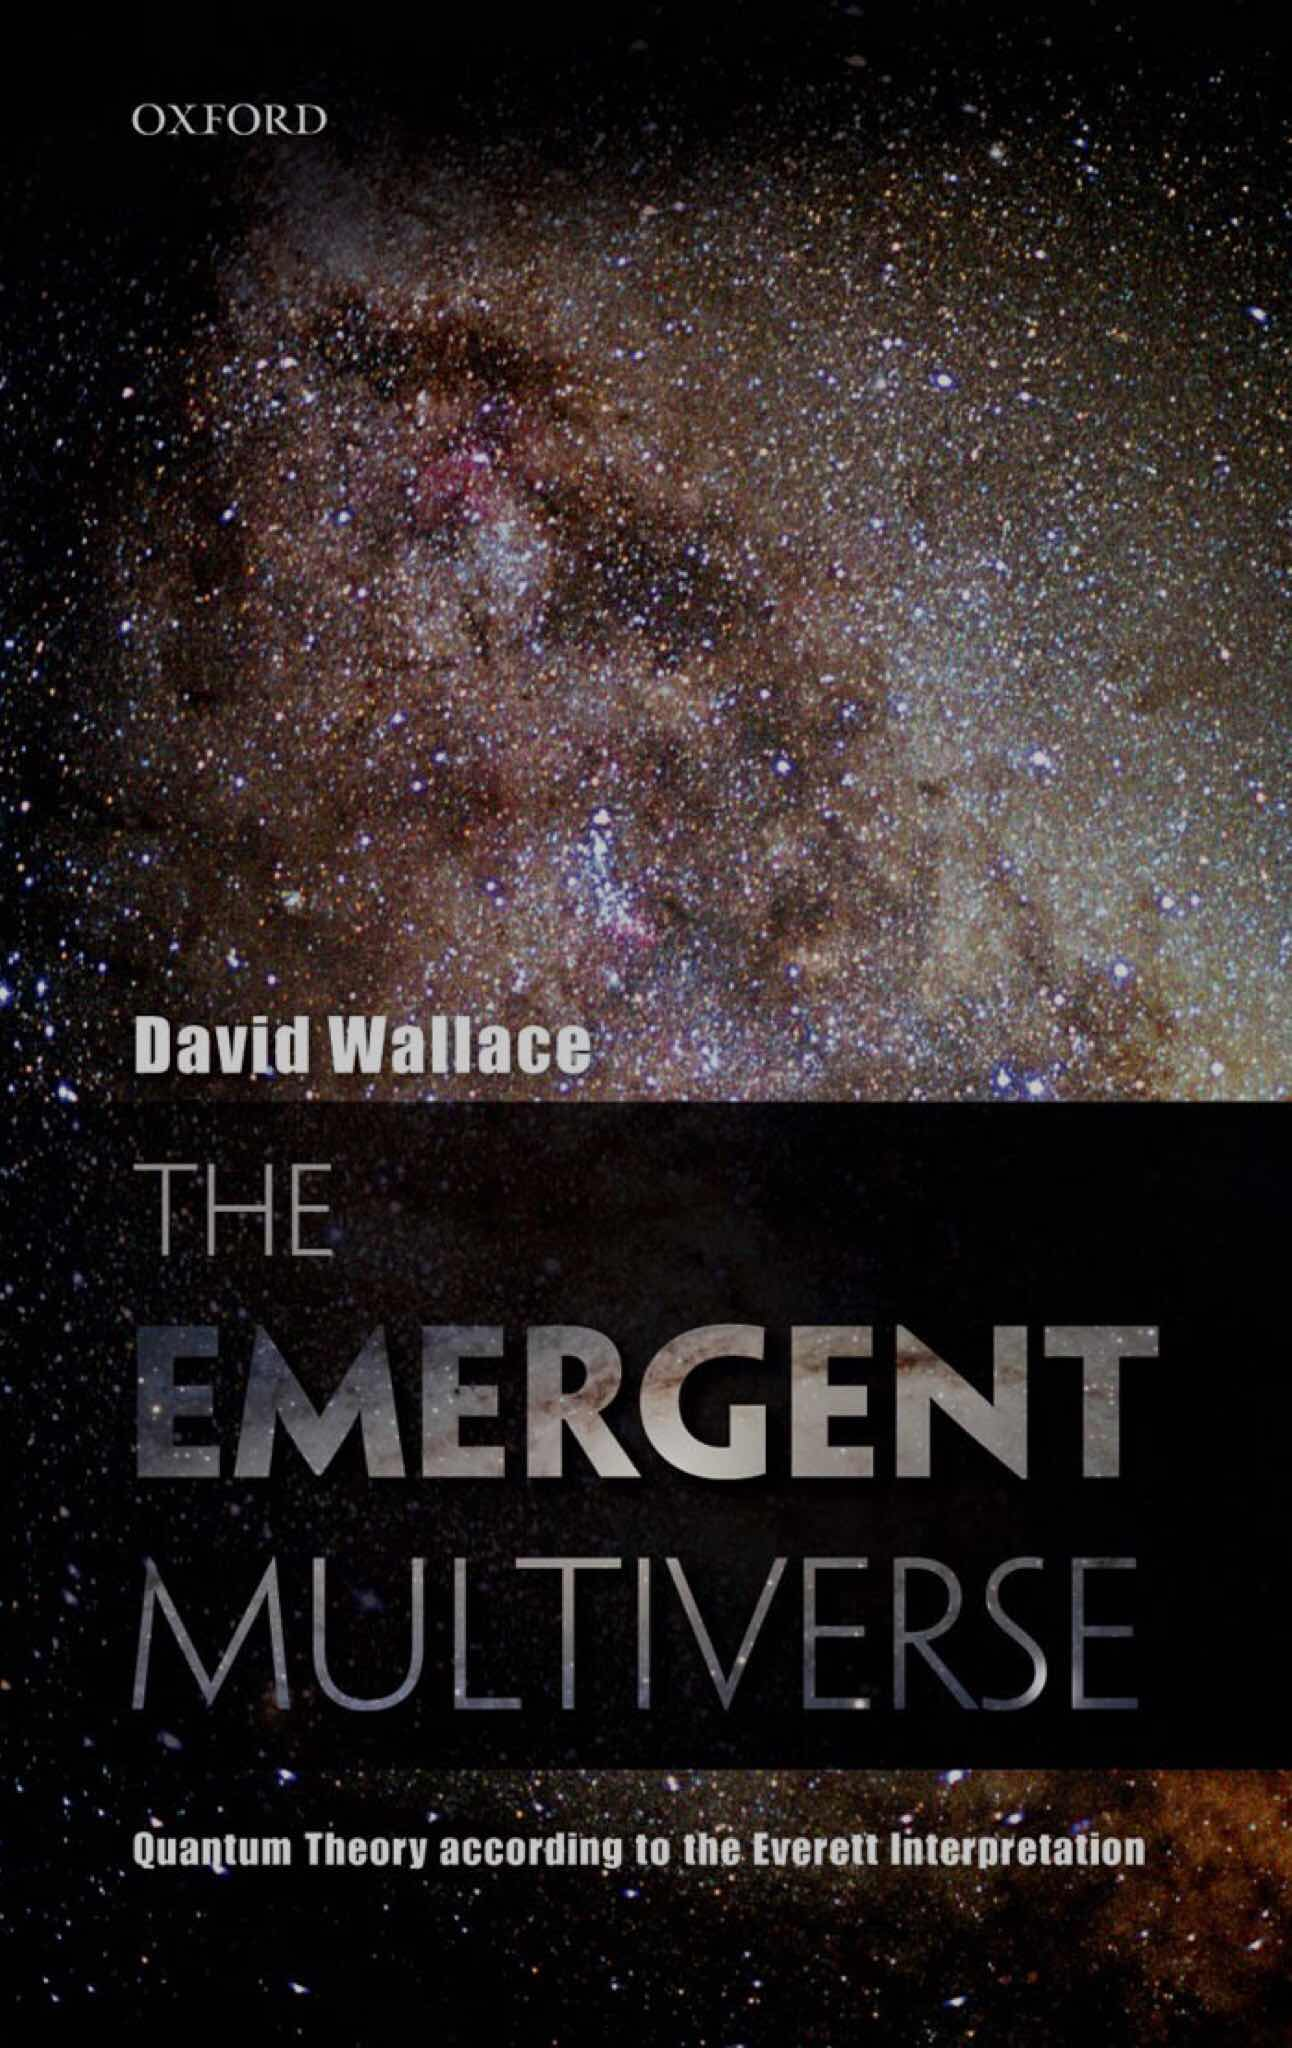 The Emerging Multiverse by David Wallace